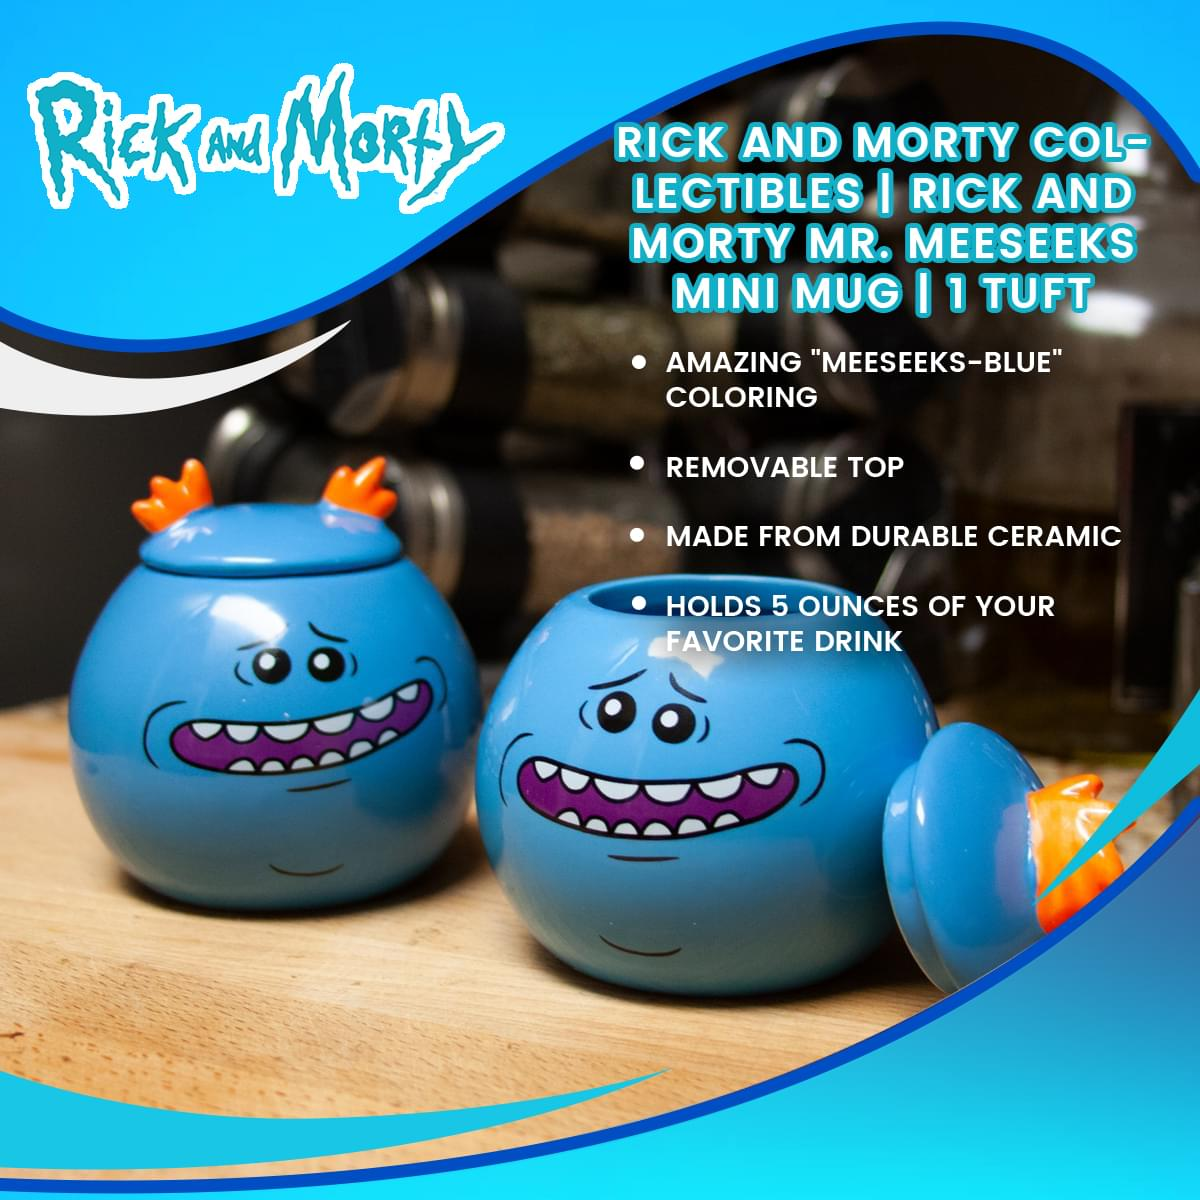 Rick and Morty Collectibles | Rick and Morty Mr. Meeseeks Mini Mug | 1 Tuft